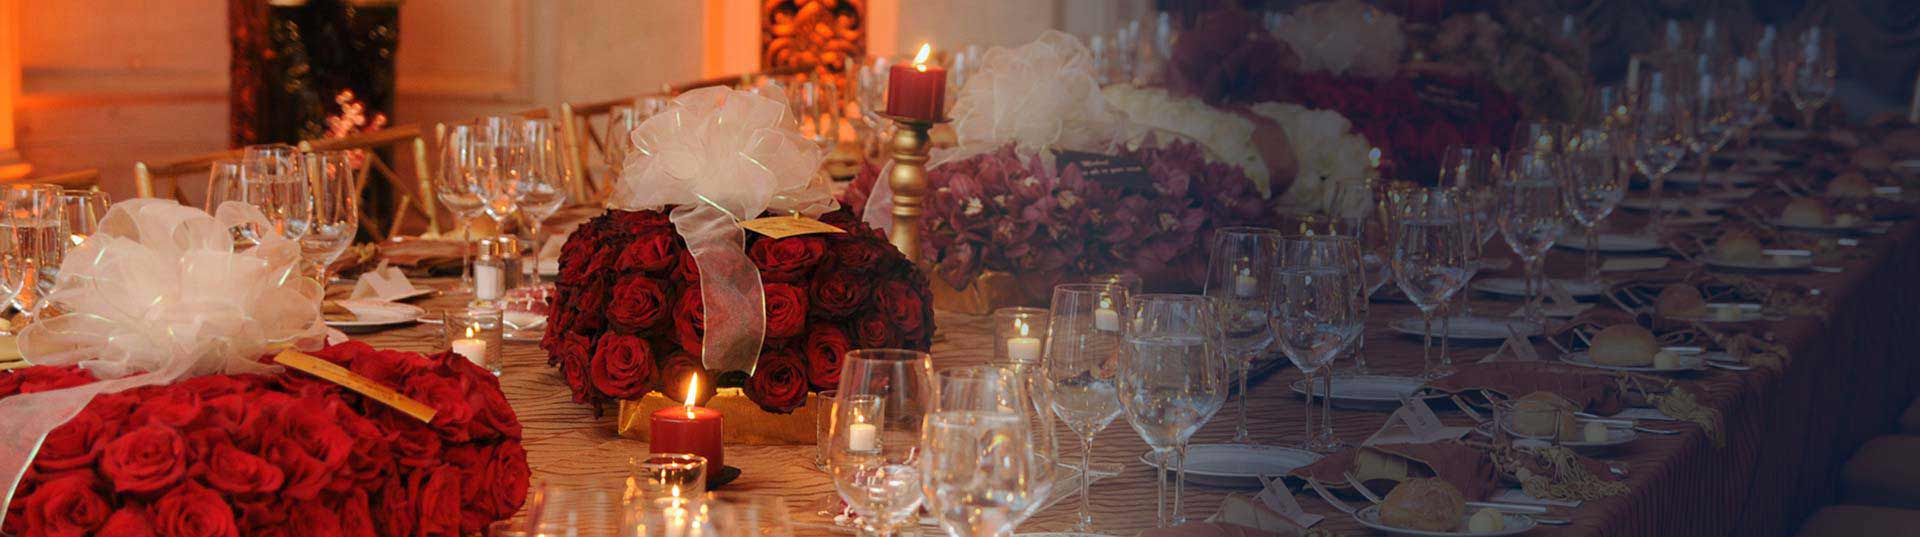 Dining, Catering & Floral Design showcasing at NYC Milestone Celebration